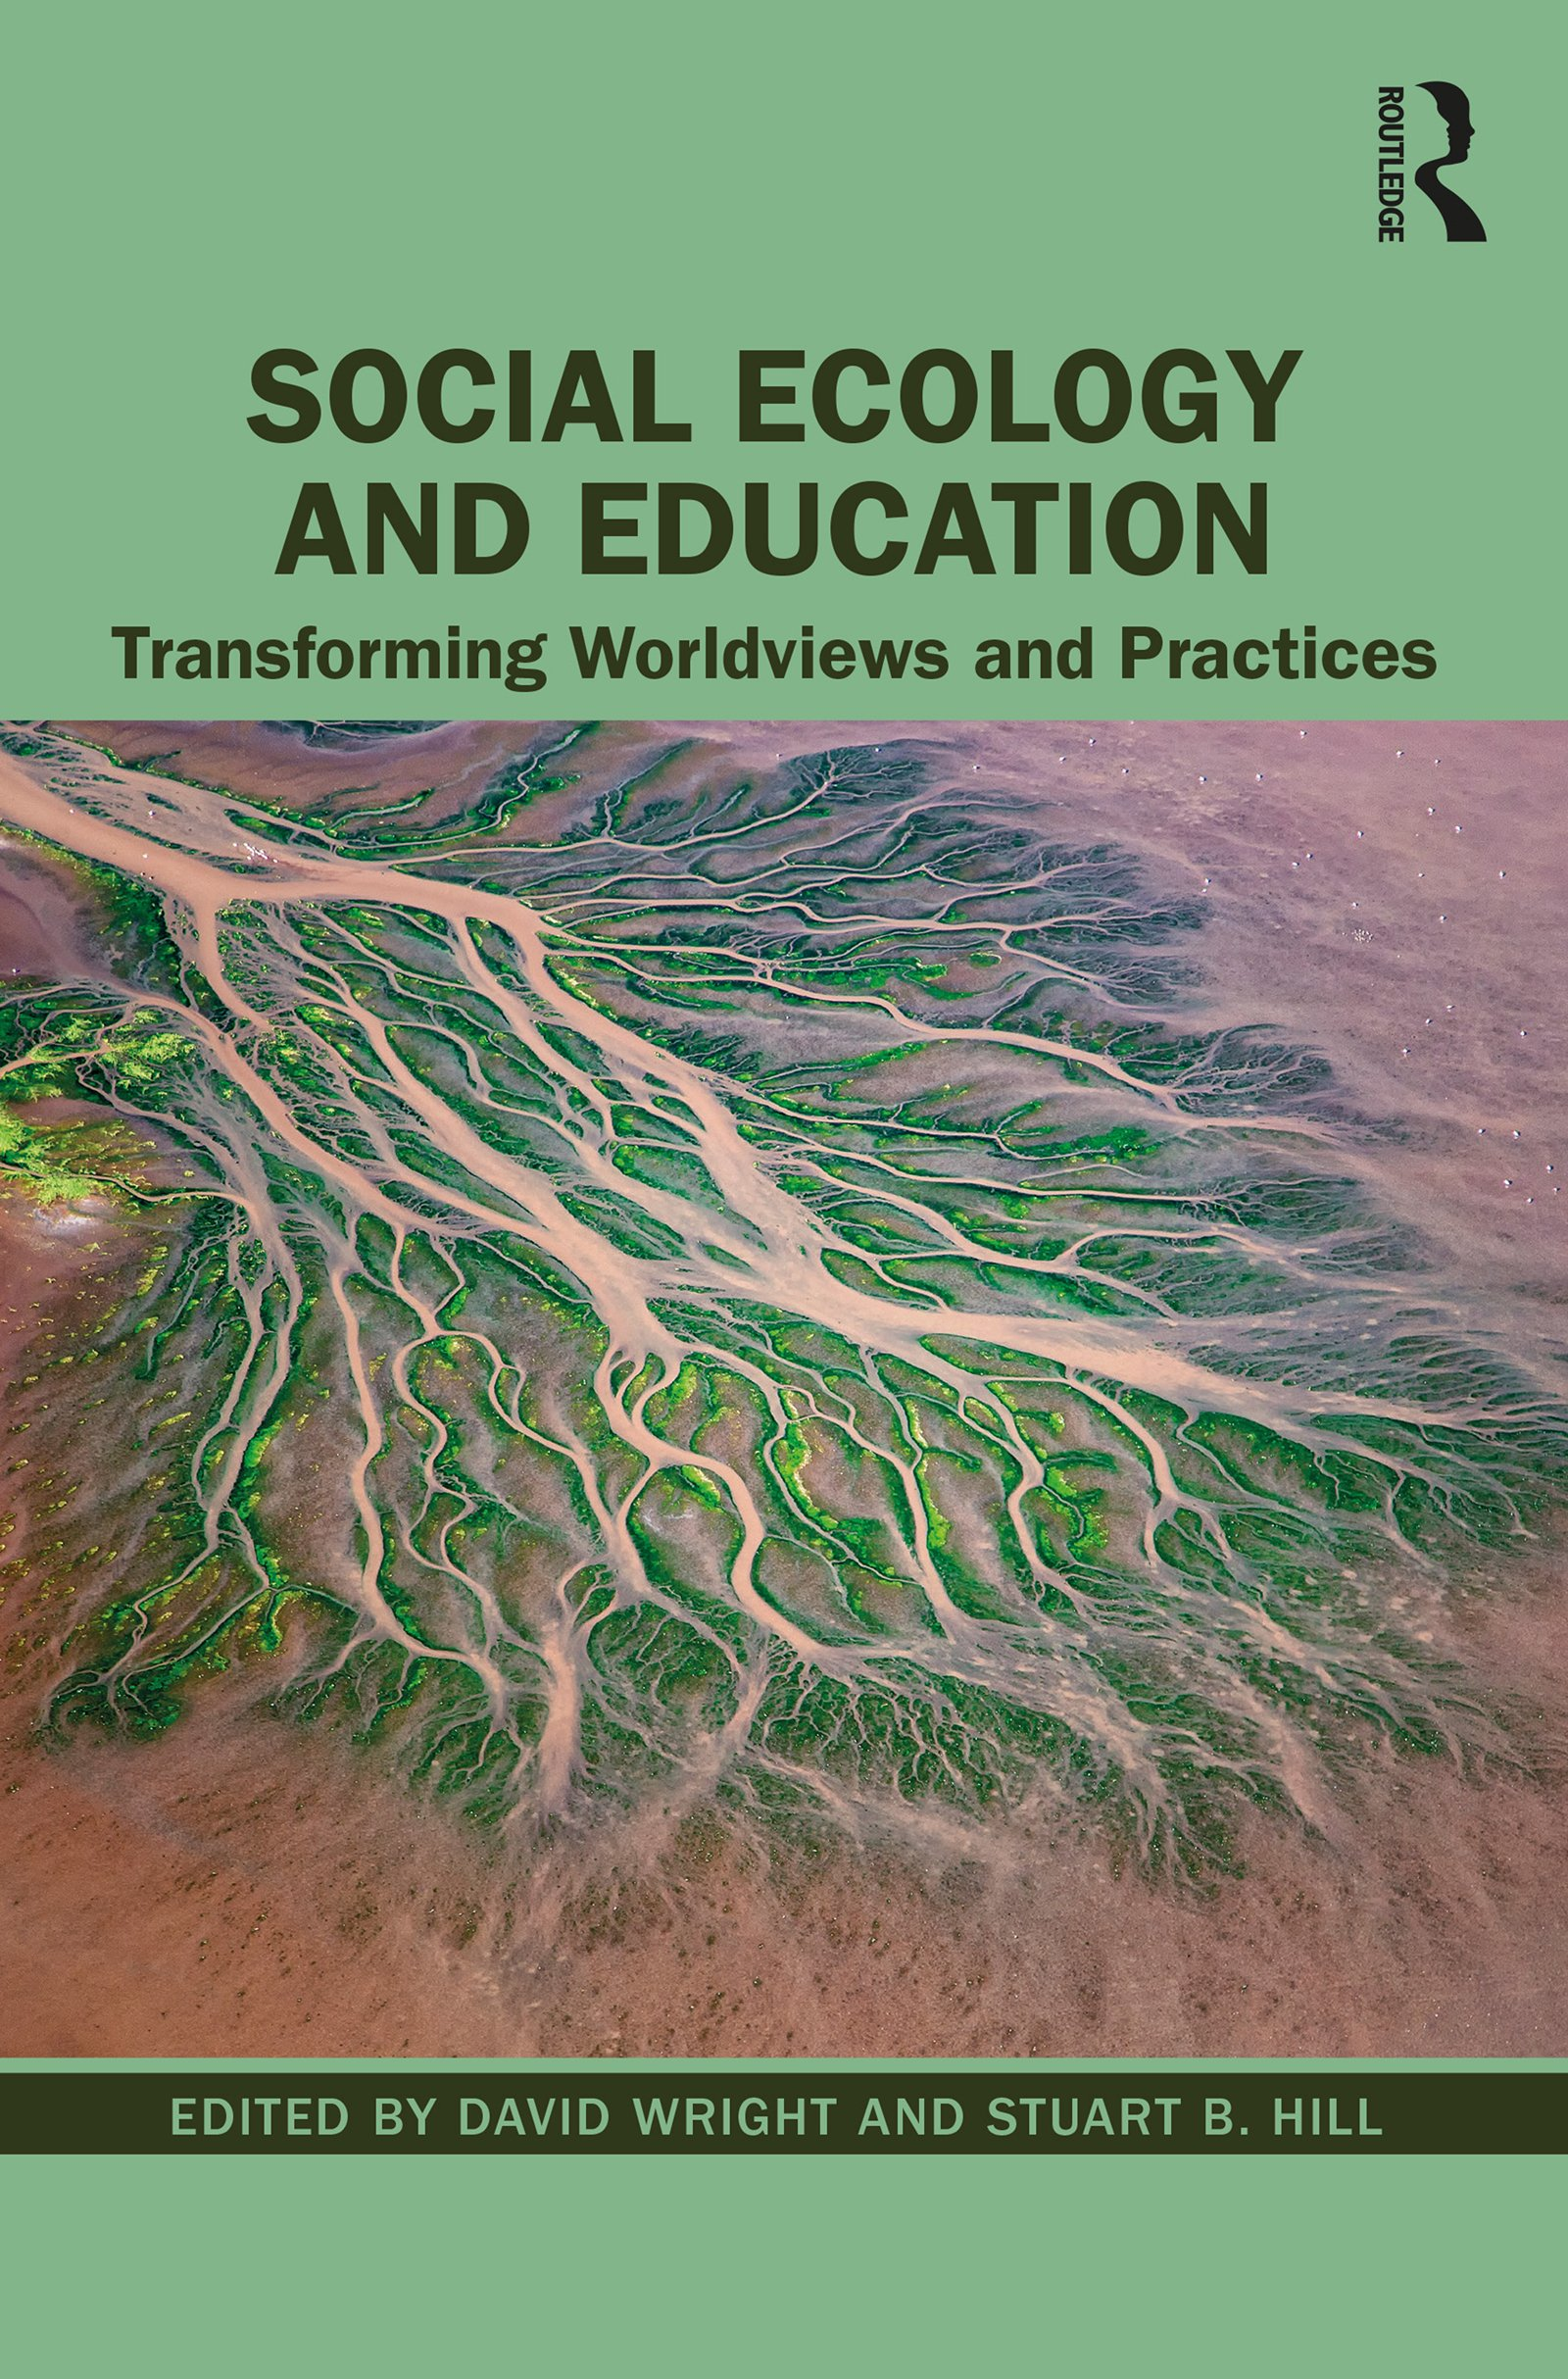 Social Ecology and Education